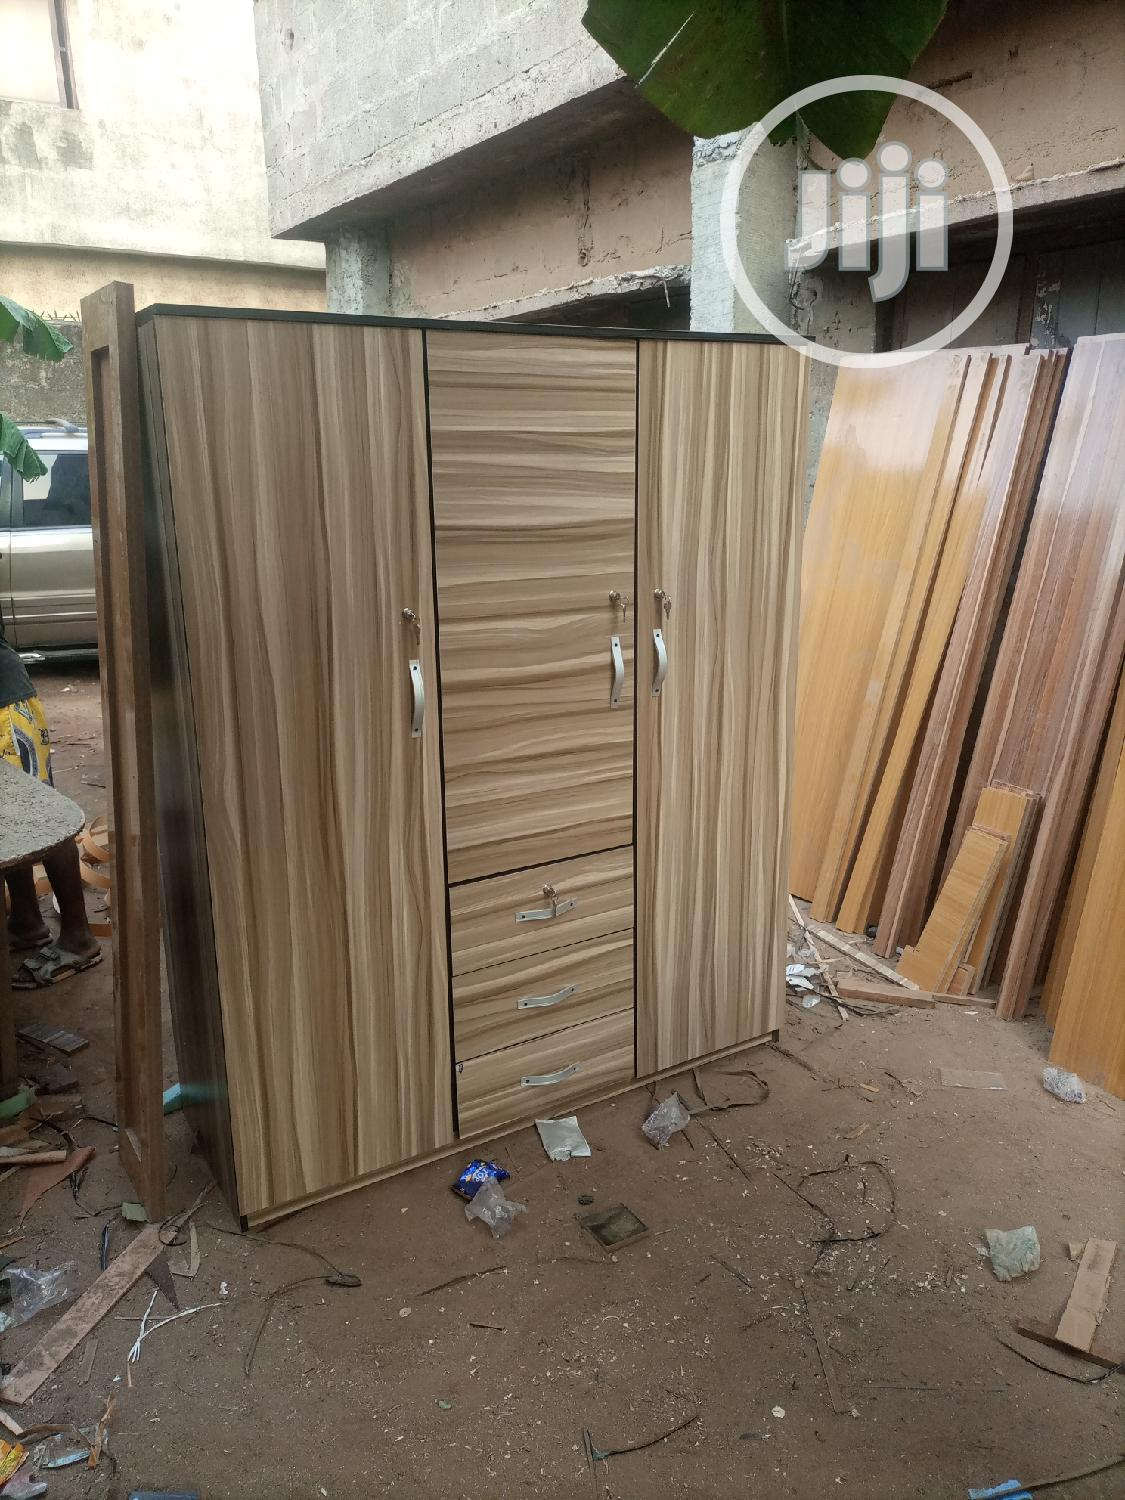 5 by 6 Wardrobe for Sale